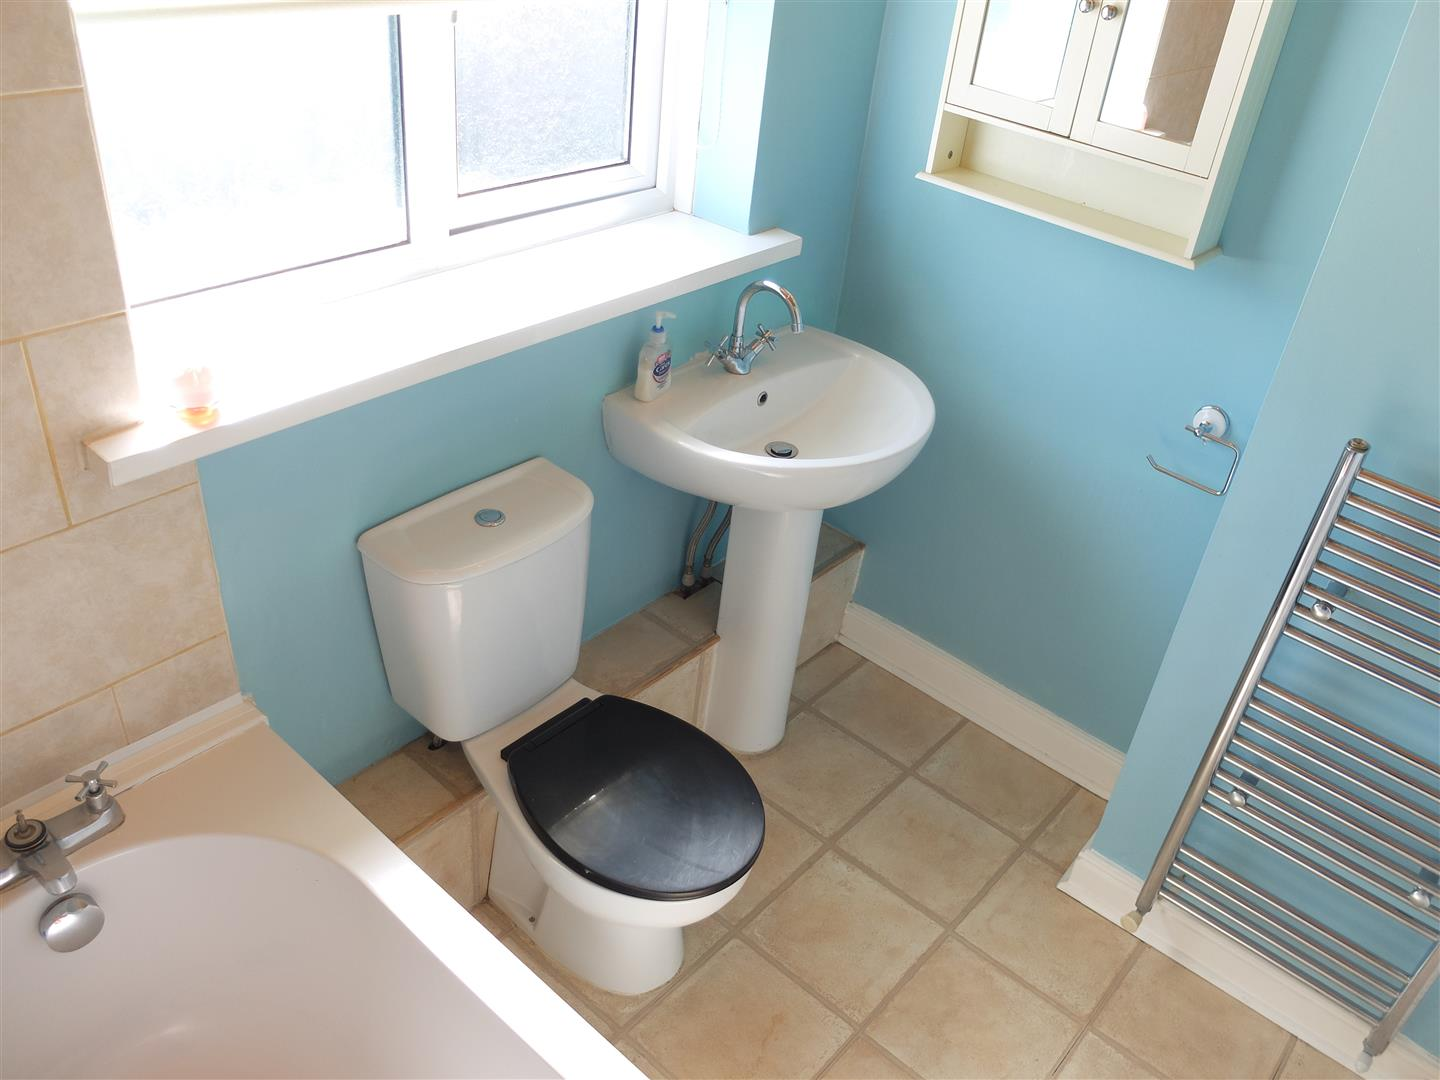 2 Bedrooms House - Semi-Detached On Sale 6 Scotby Gardens Carlisle 80,000